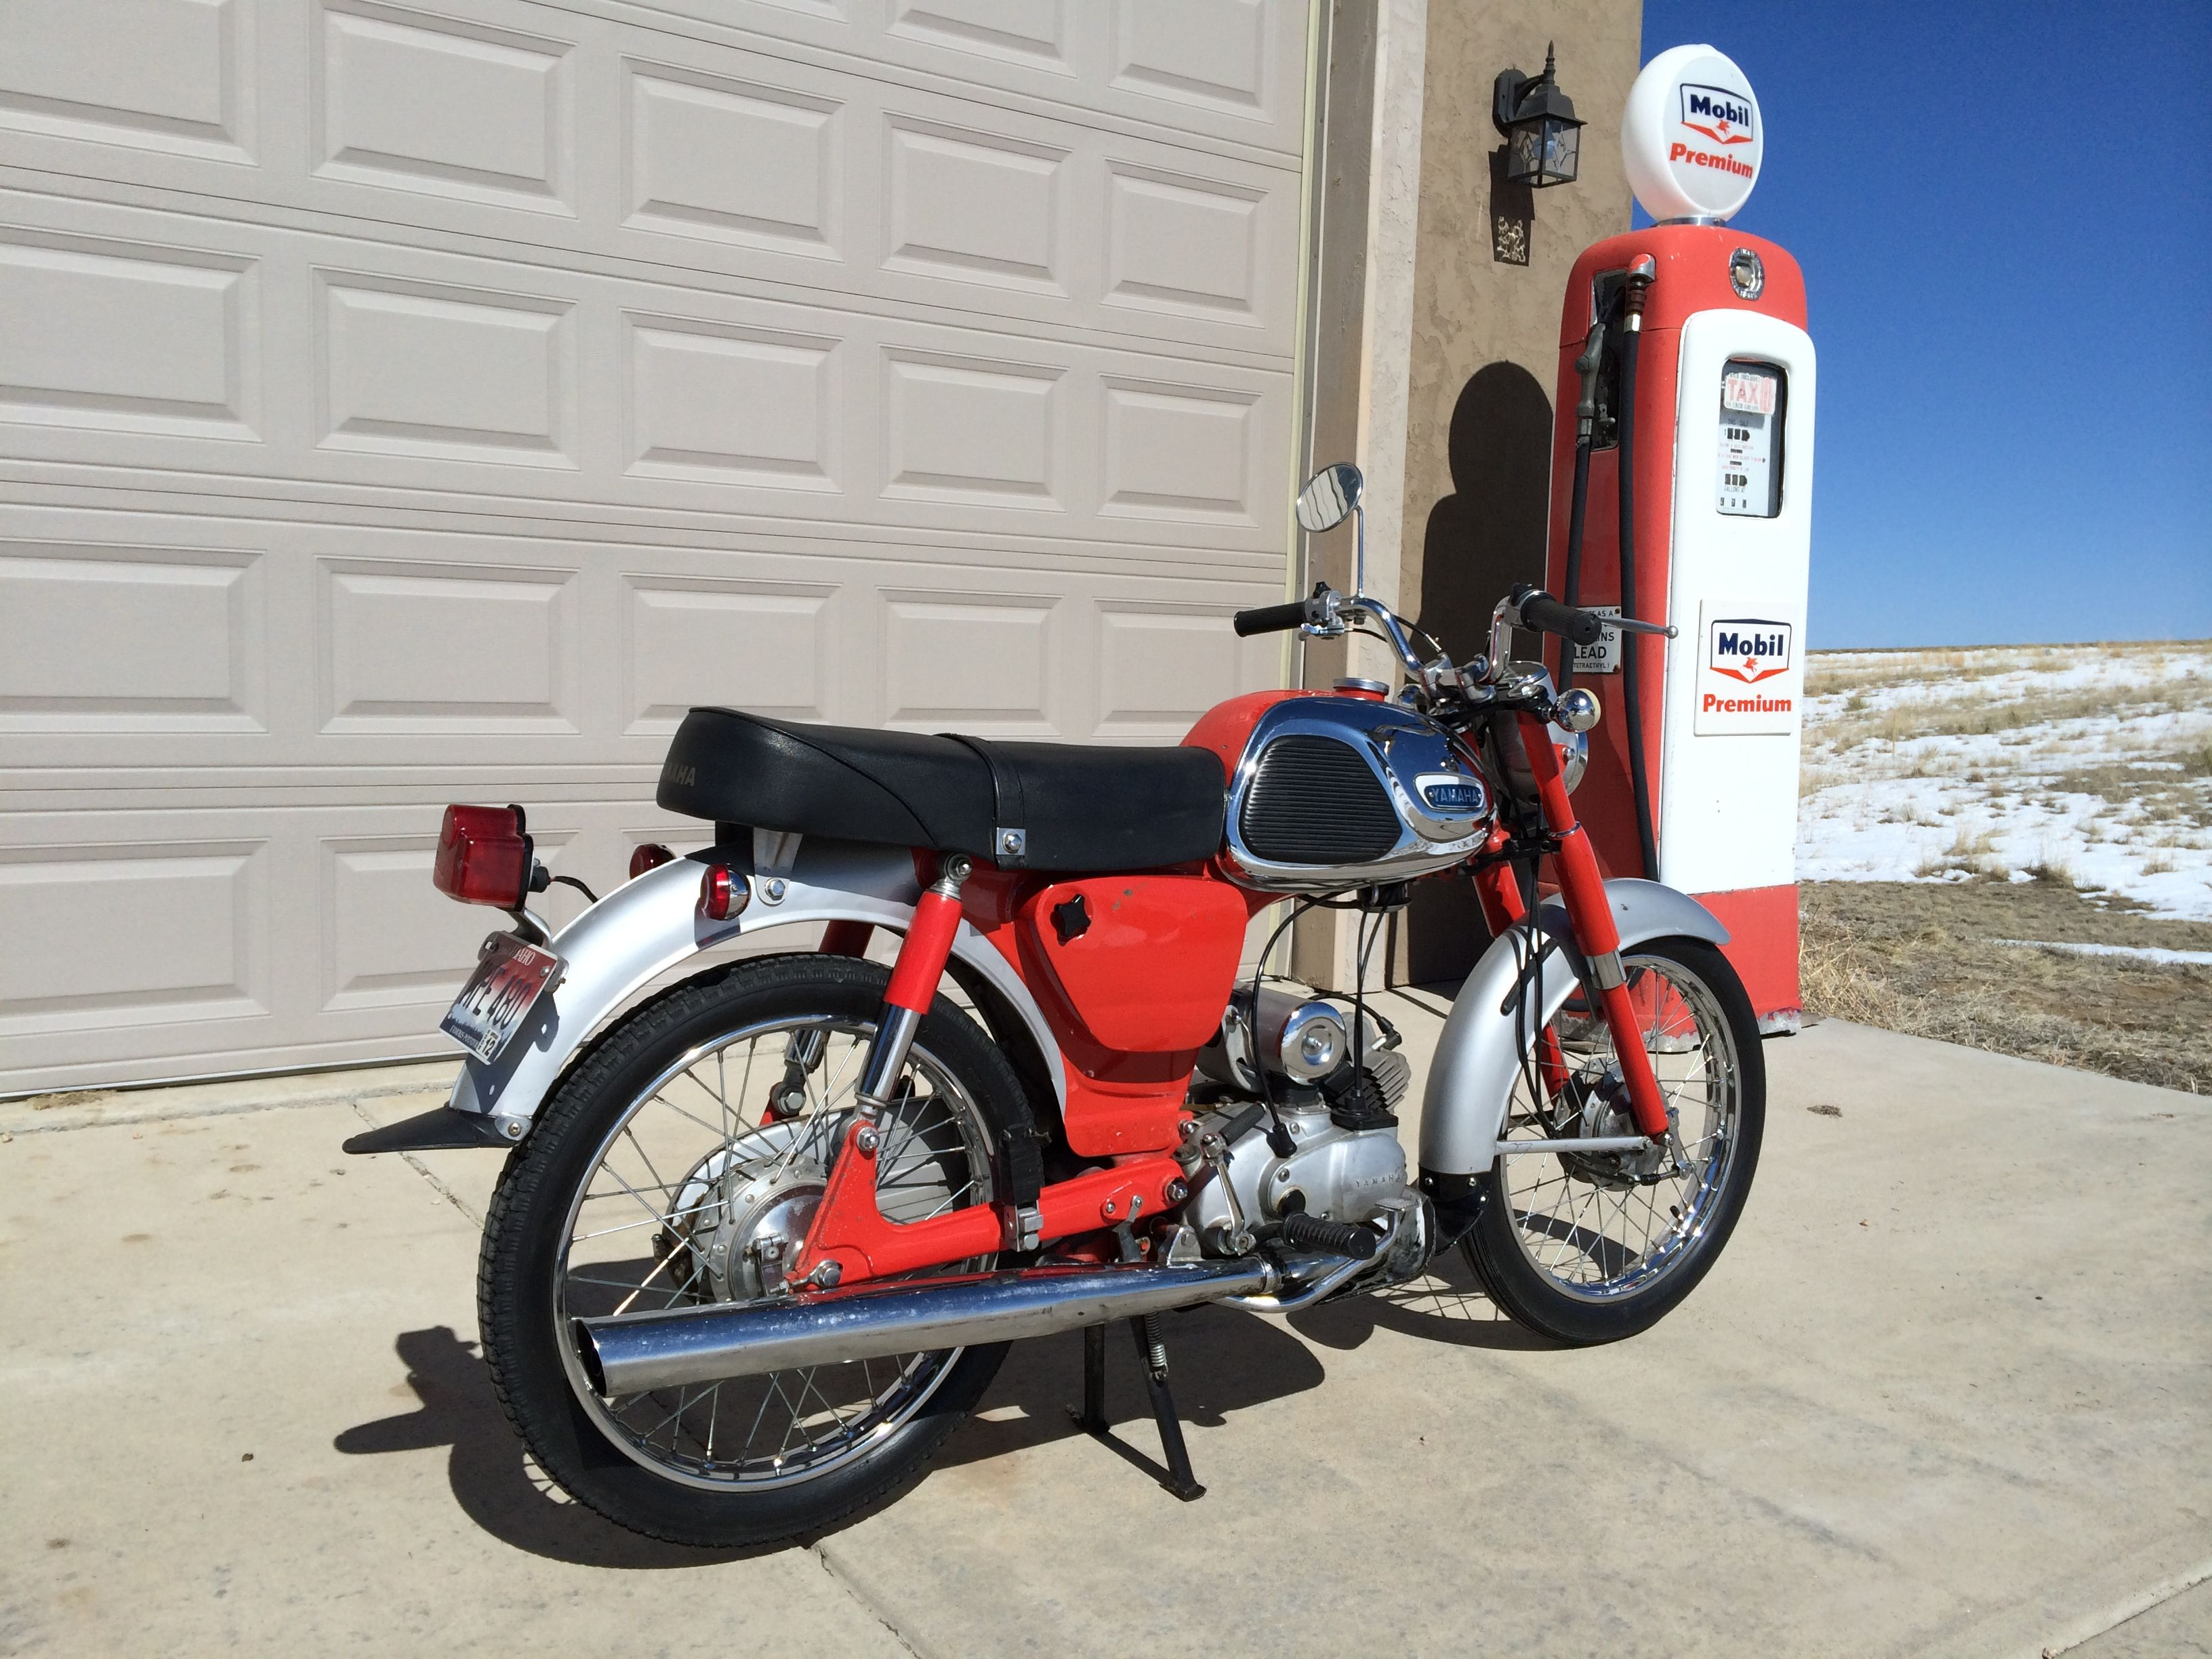 Early '64 Yamaha YG-1 2 stroke 80cc street bike w/ 4 speed